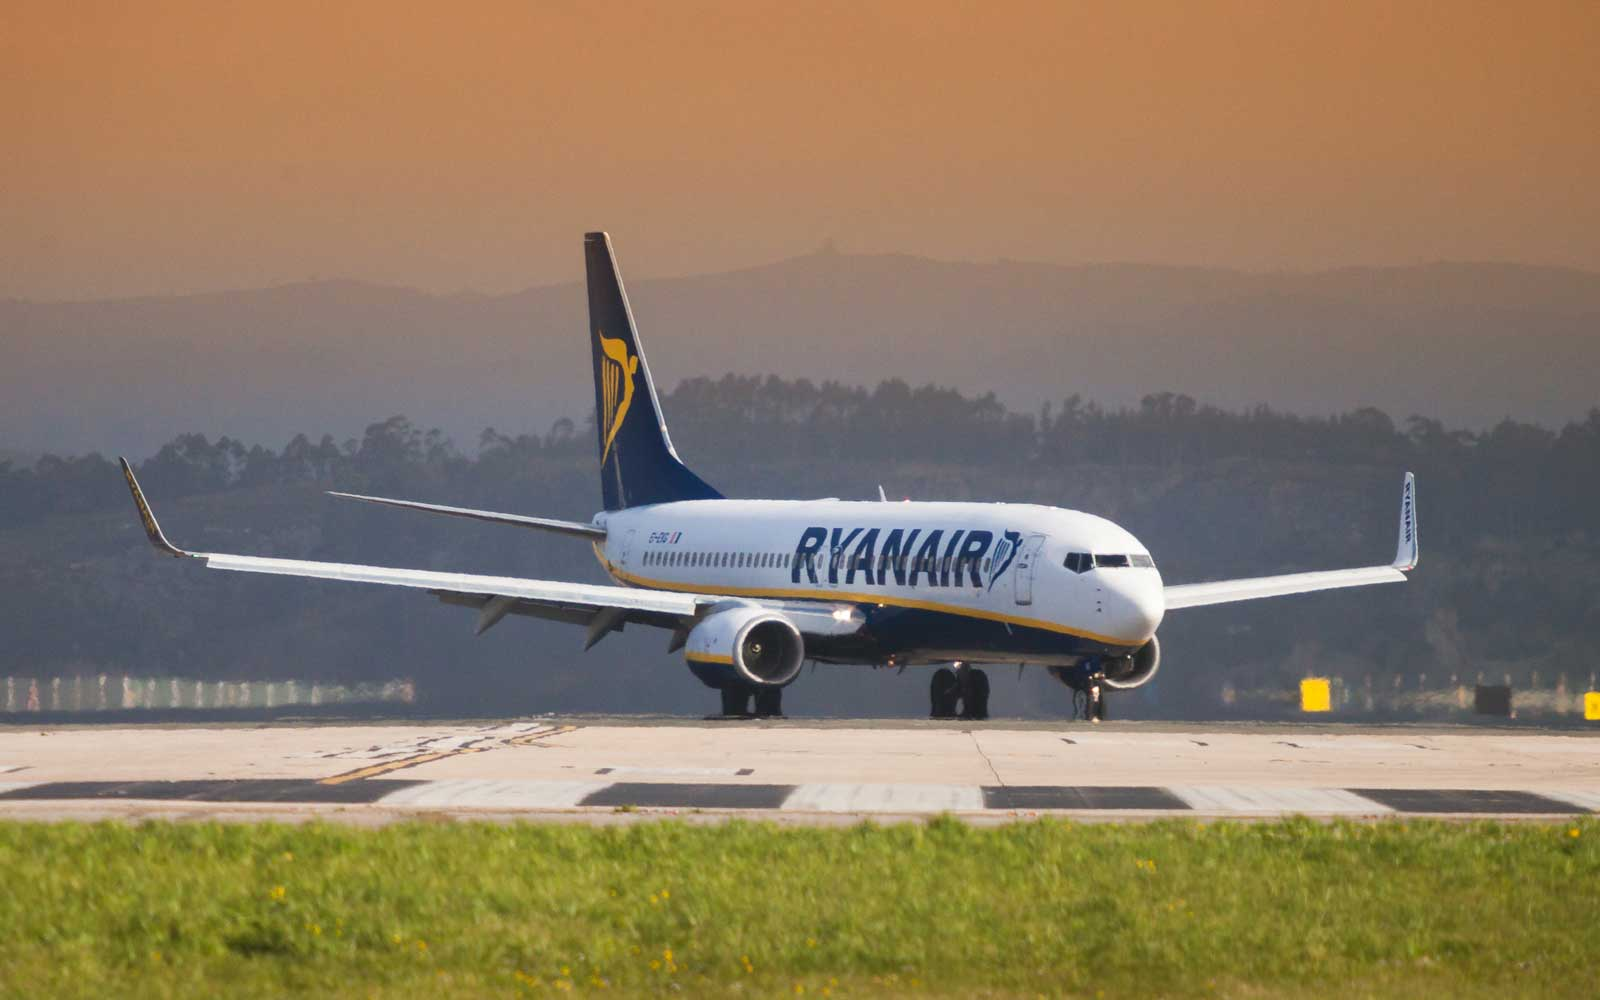 Ryanair Warns of Summer Travel 'Meltdown' As Strikes Cause More Flight Cancellations Across Europe